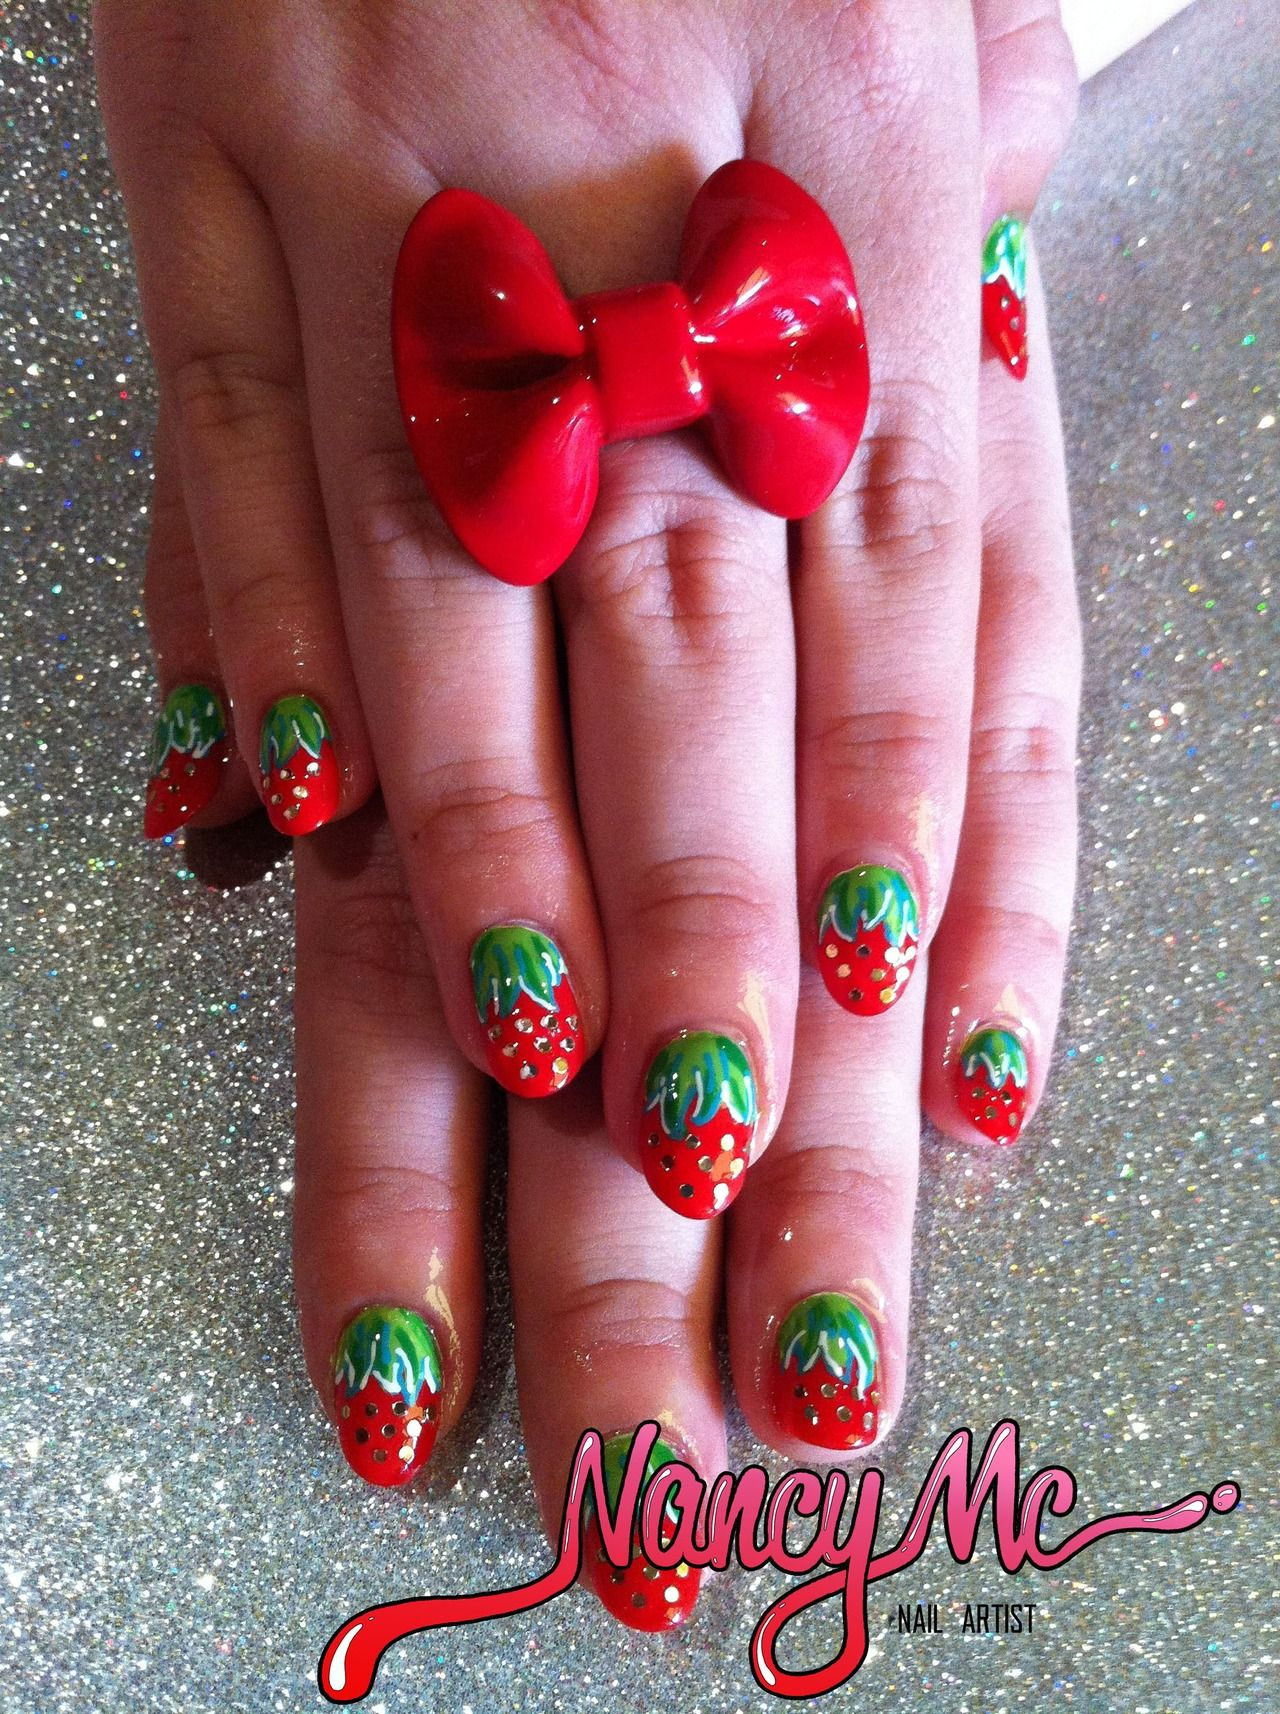 Loulou's strawberry nails!